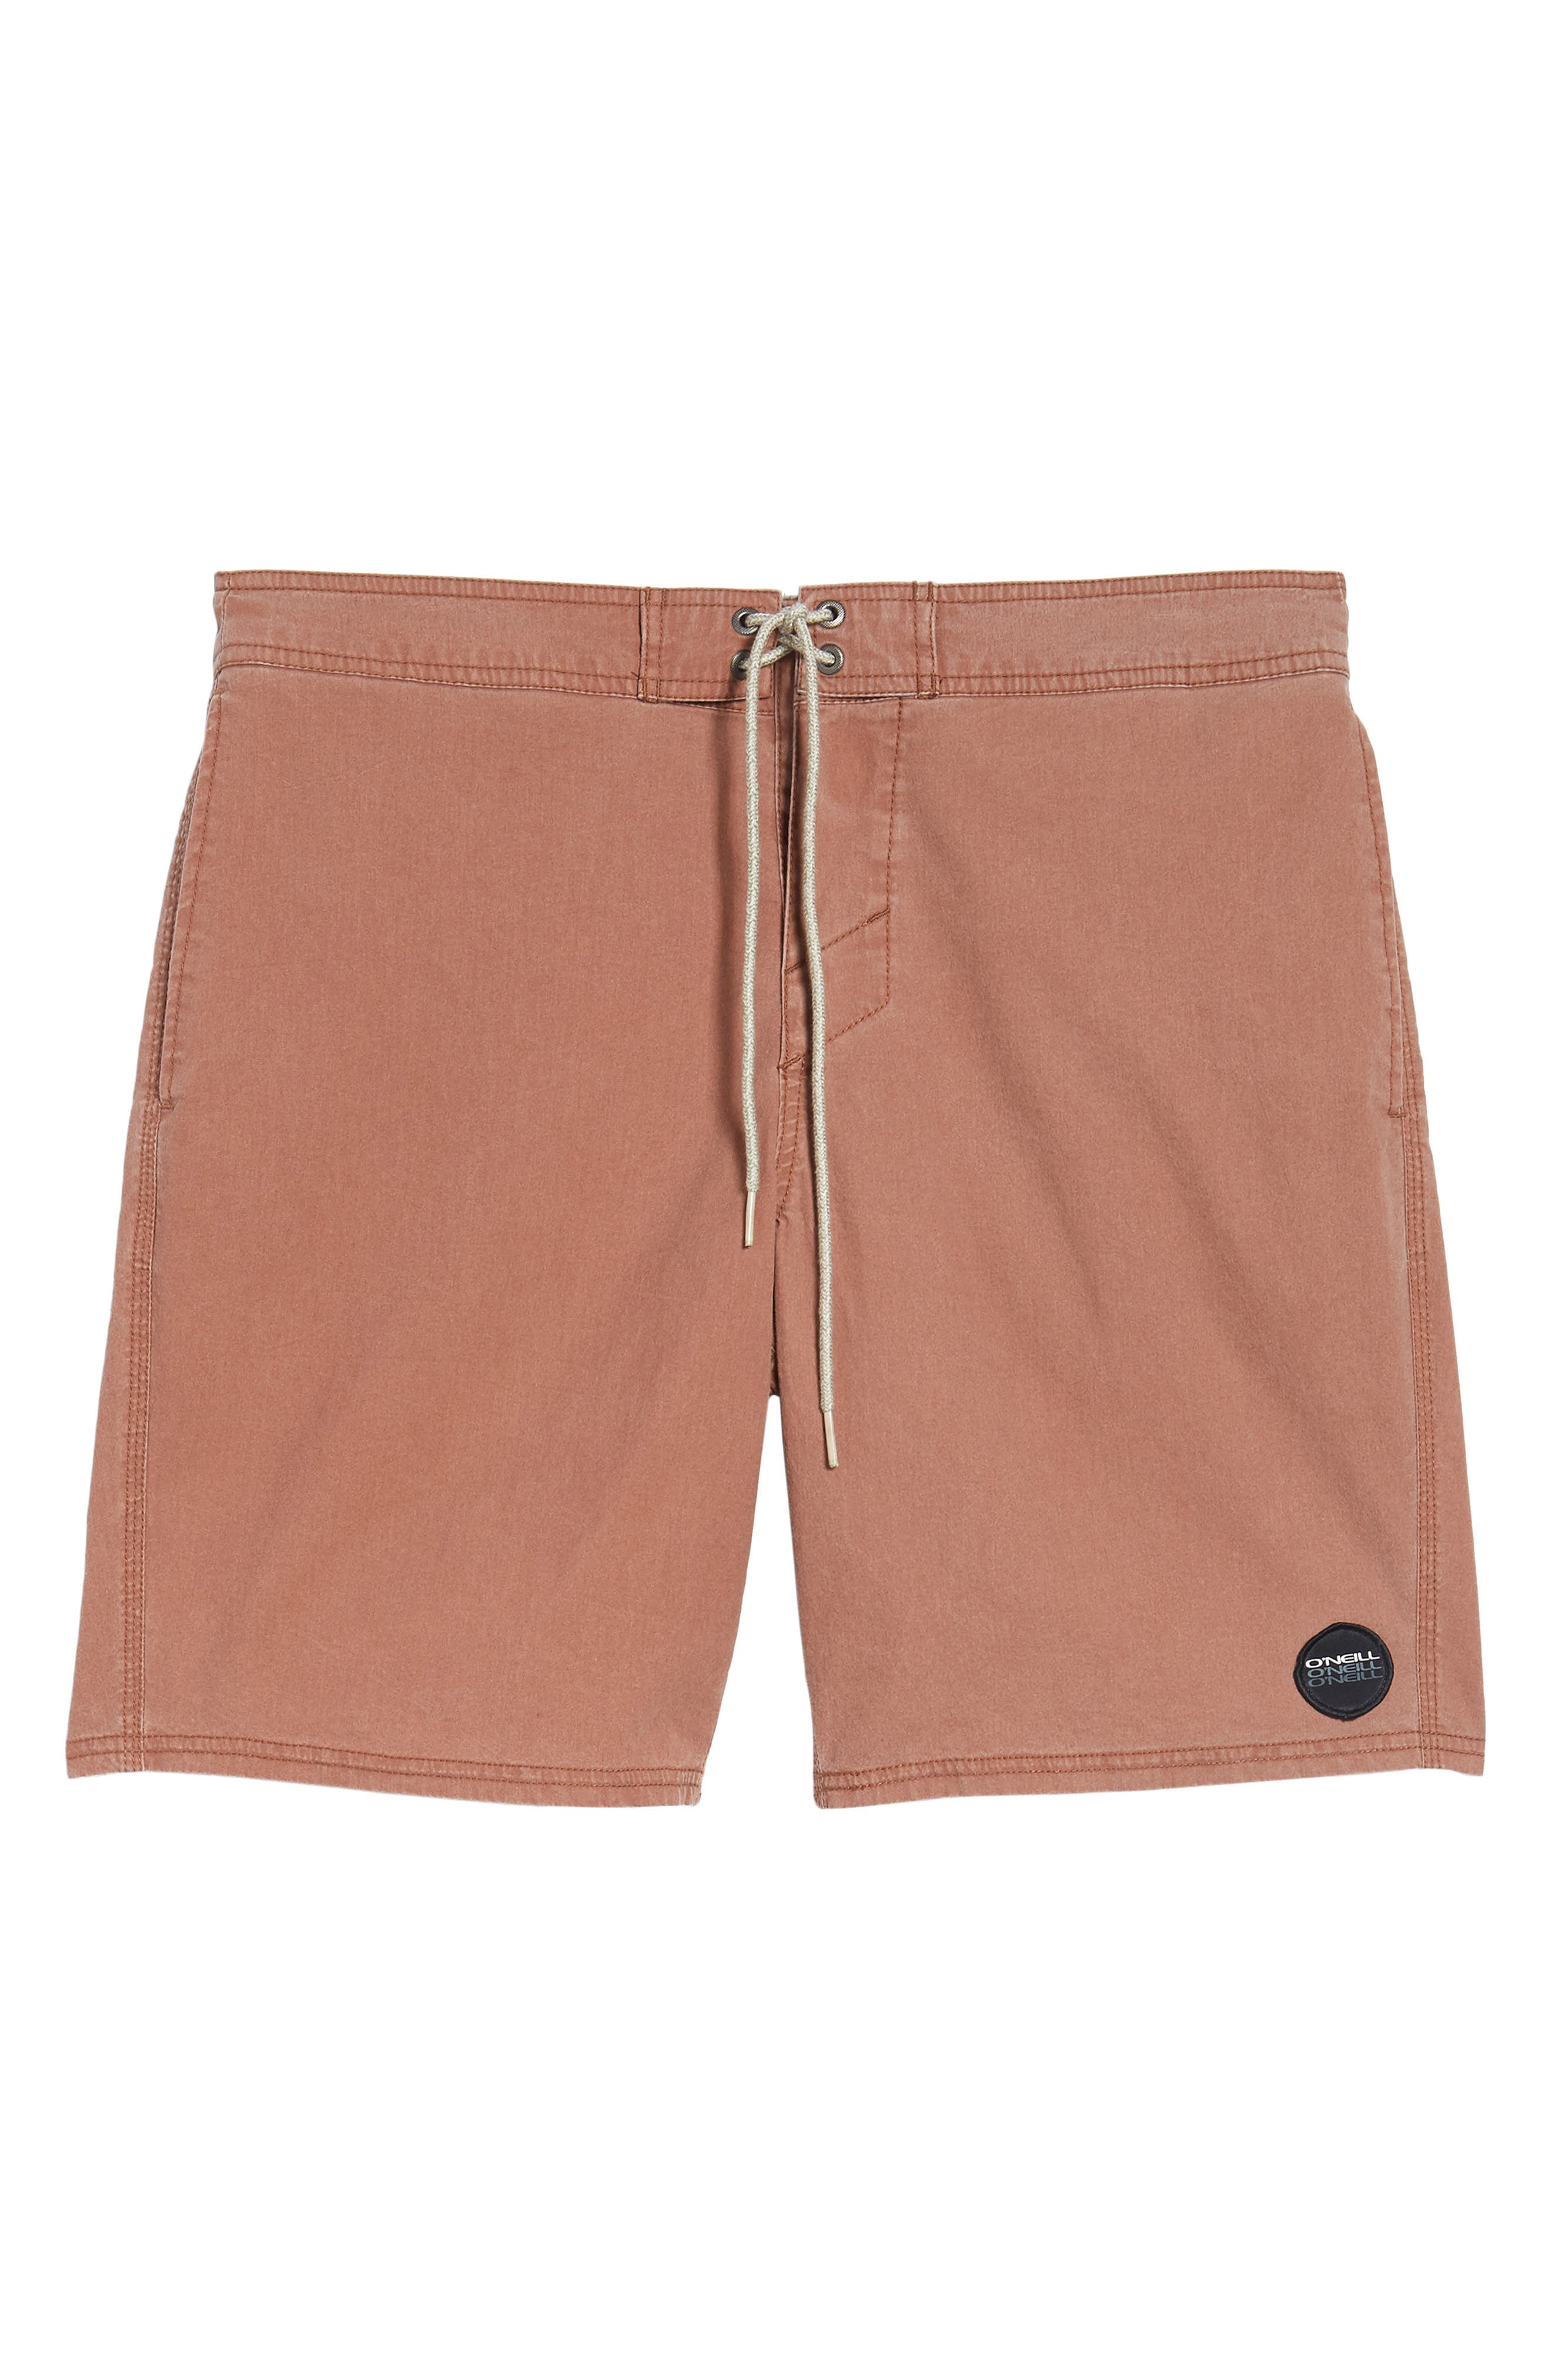 Faded Cruzer Board Shorts,                             Alternate thumbnail 6, color,                             Russet